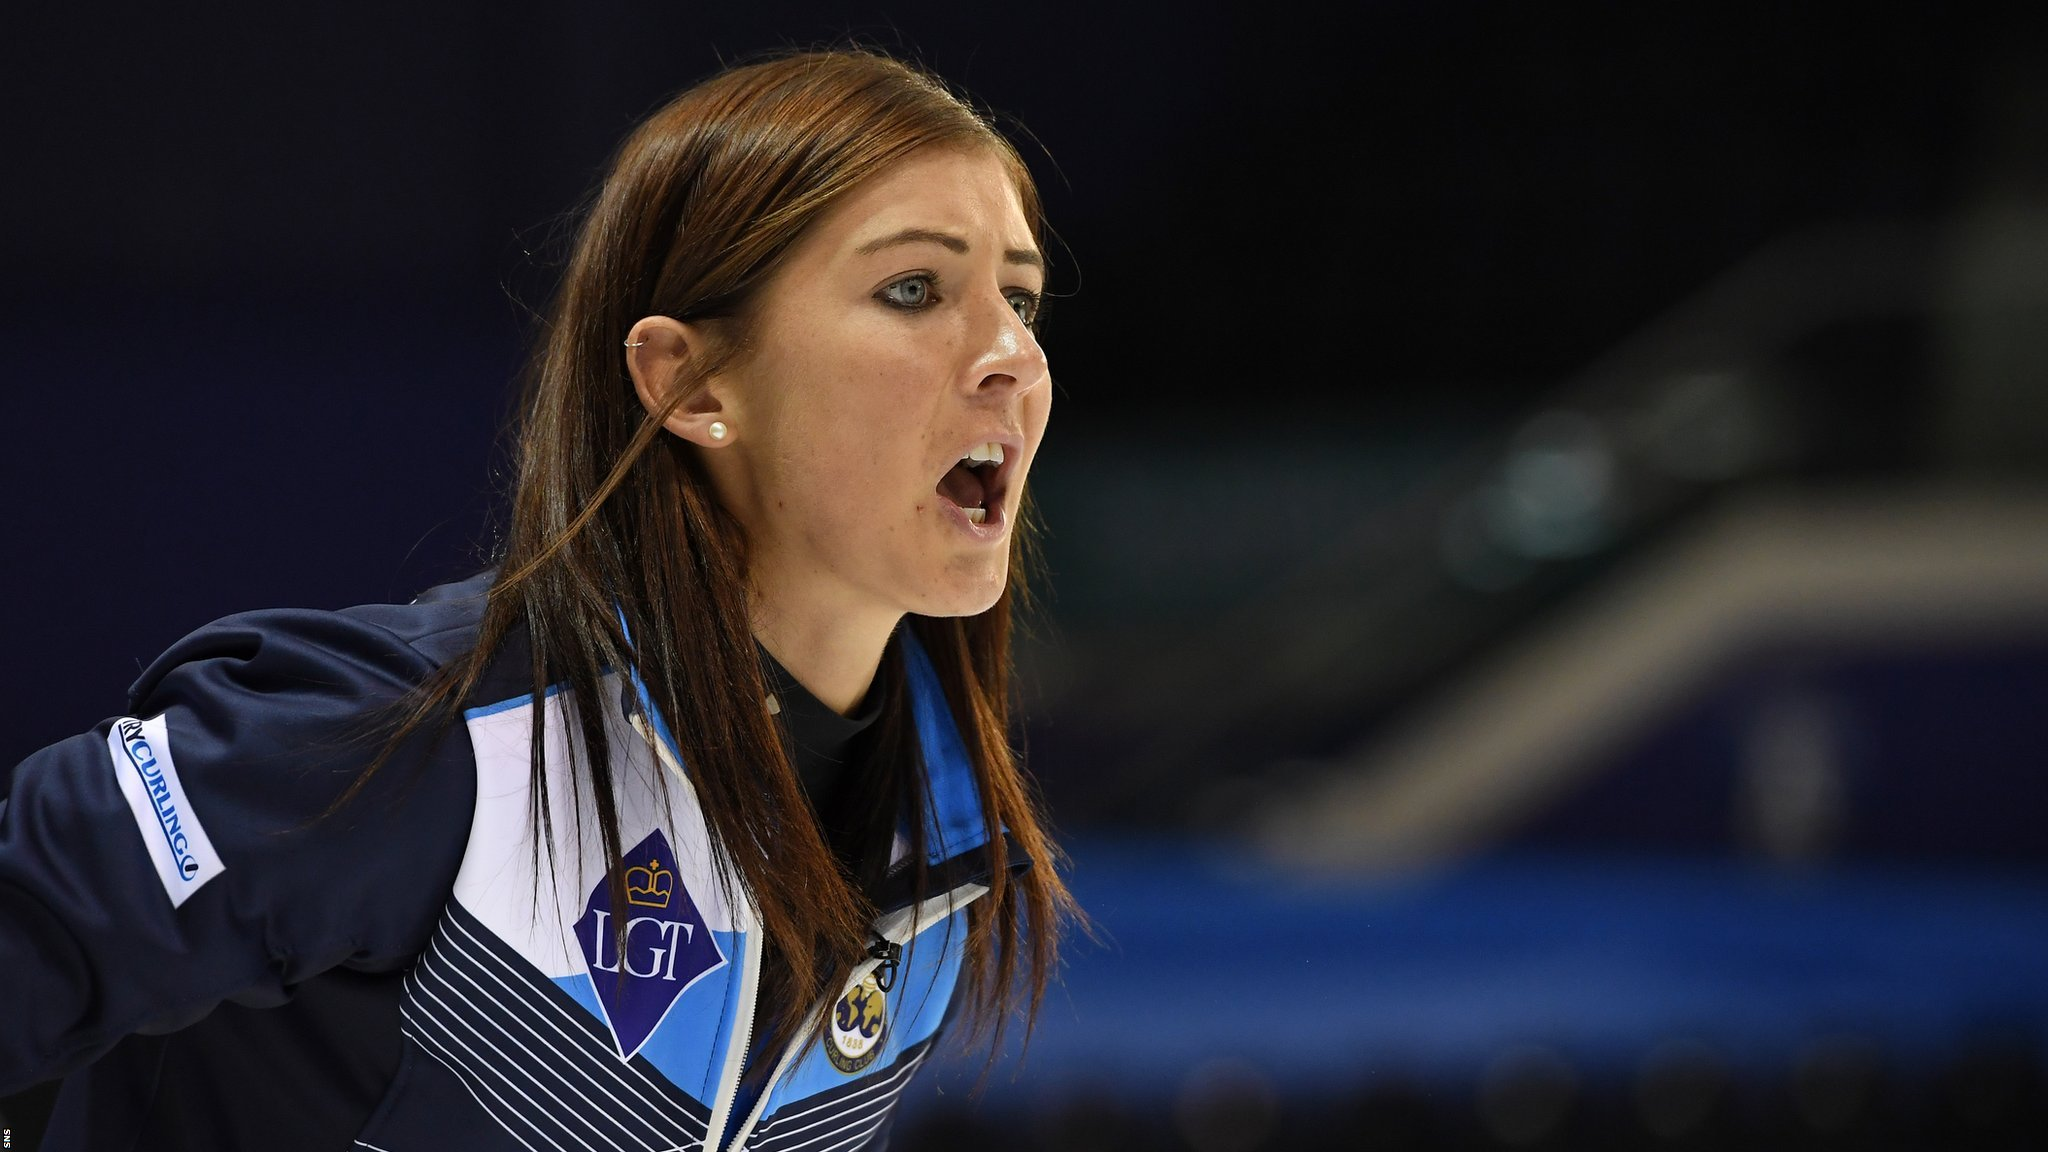 Team Muirhead '100% behind' rivals after World Championship controversy